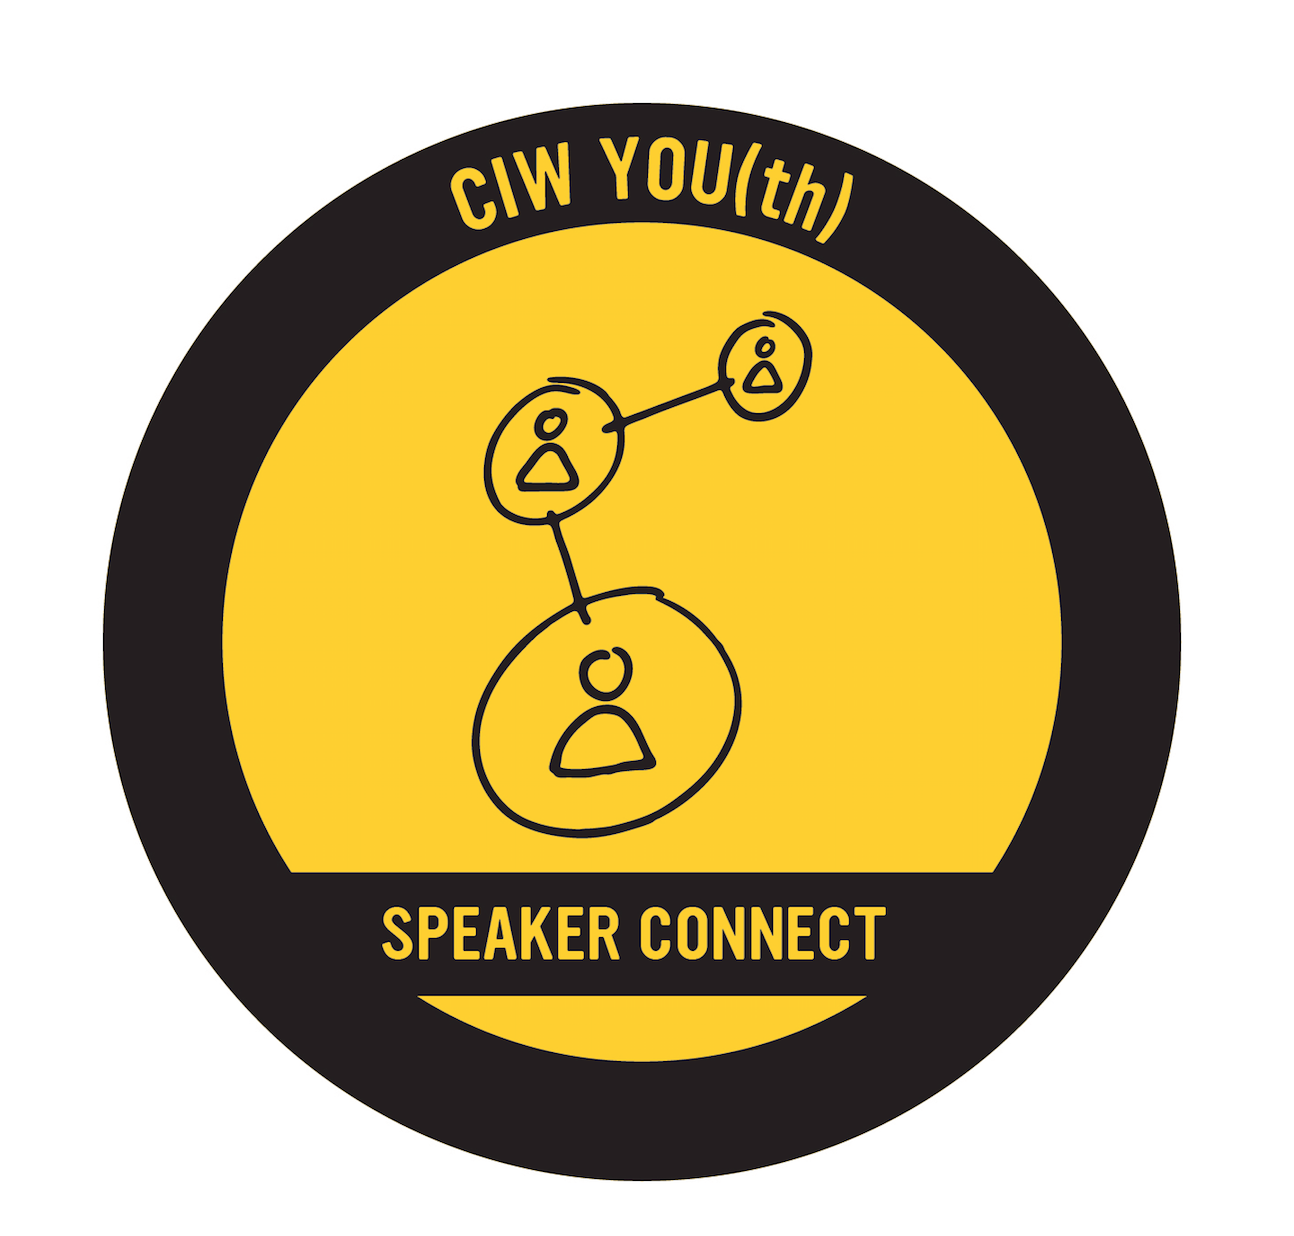 CIW YOU(th) Speaker Connect